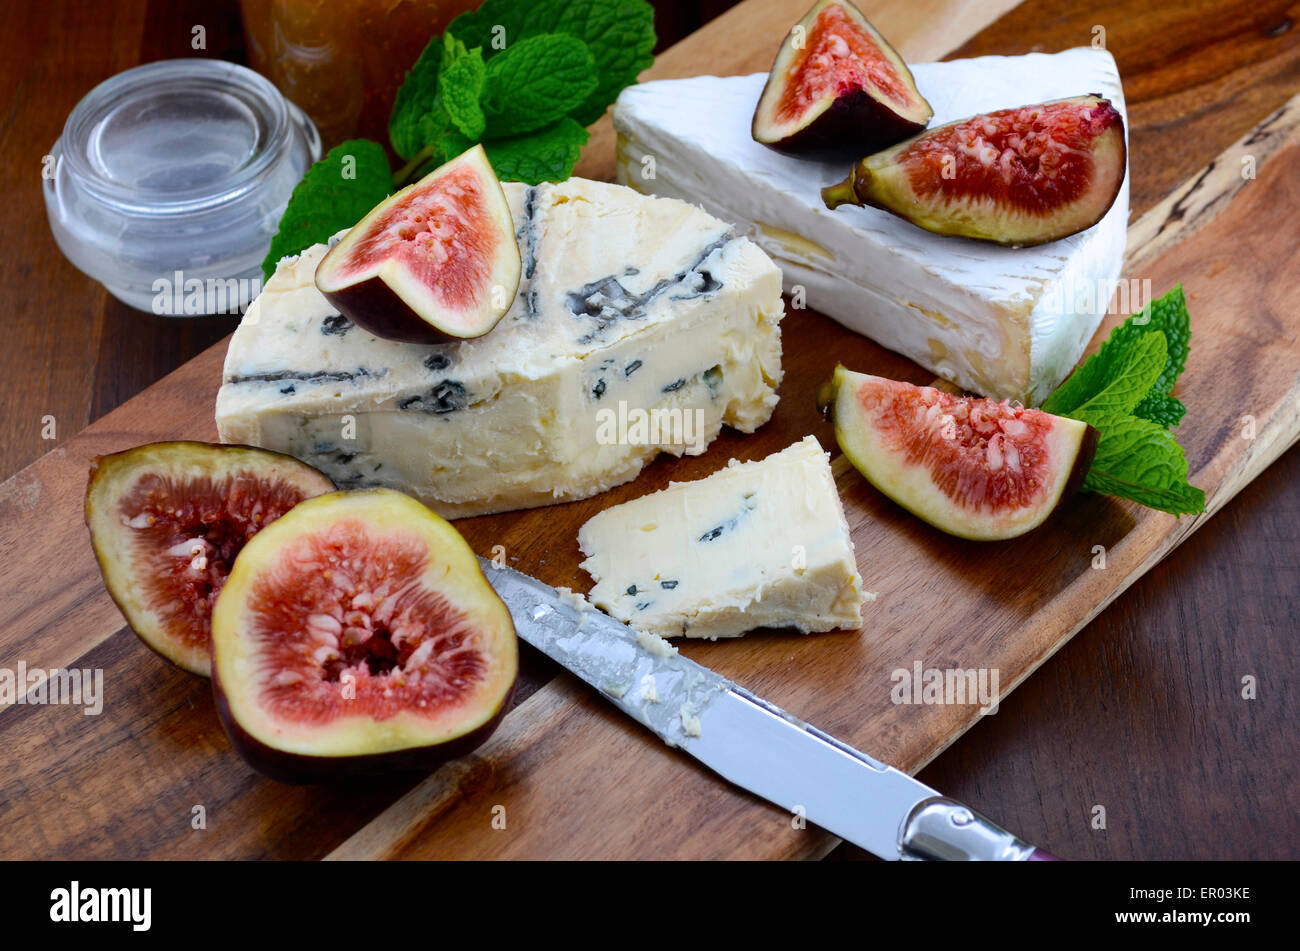 Fresh figs on wooden cutting chopping board with jar of fig jelly preserve and gourmet cheese on dark wood rustic - Stock Image